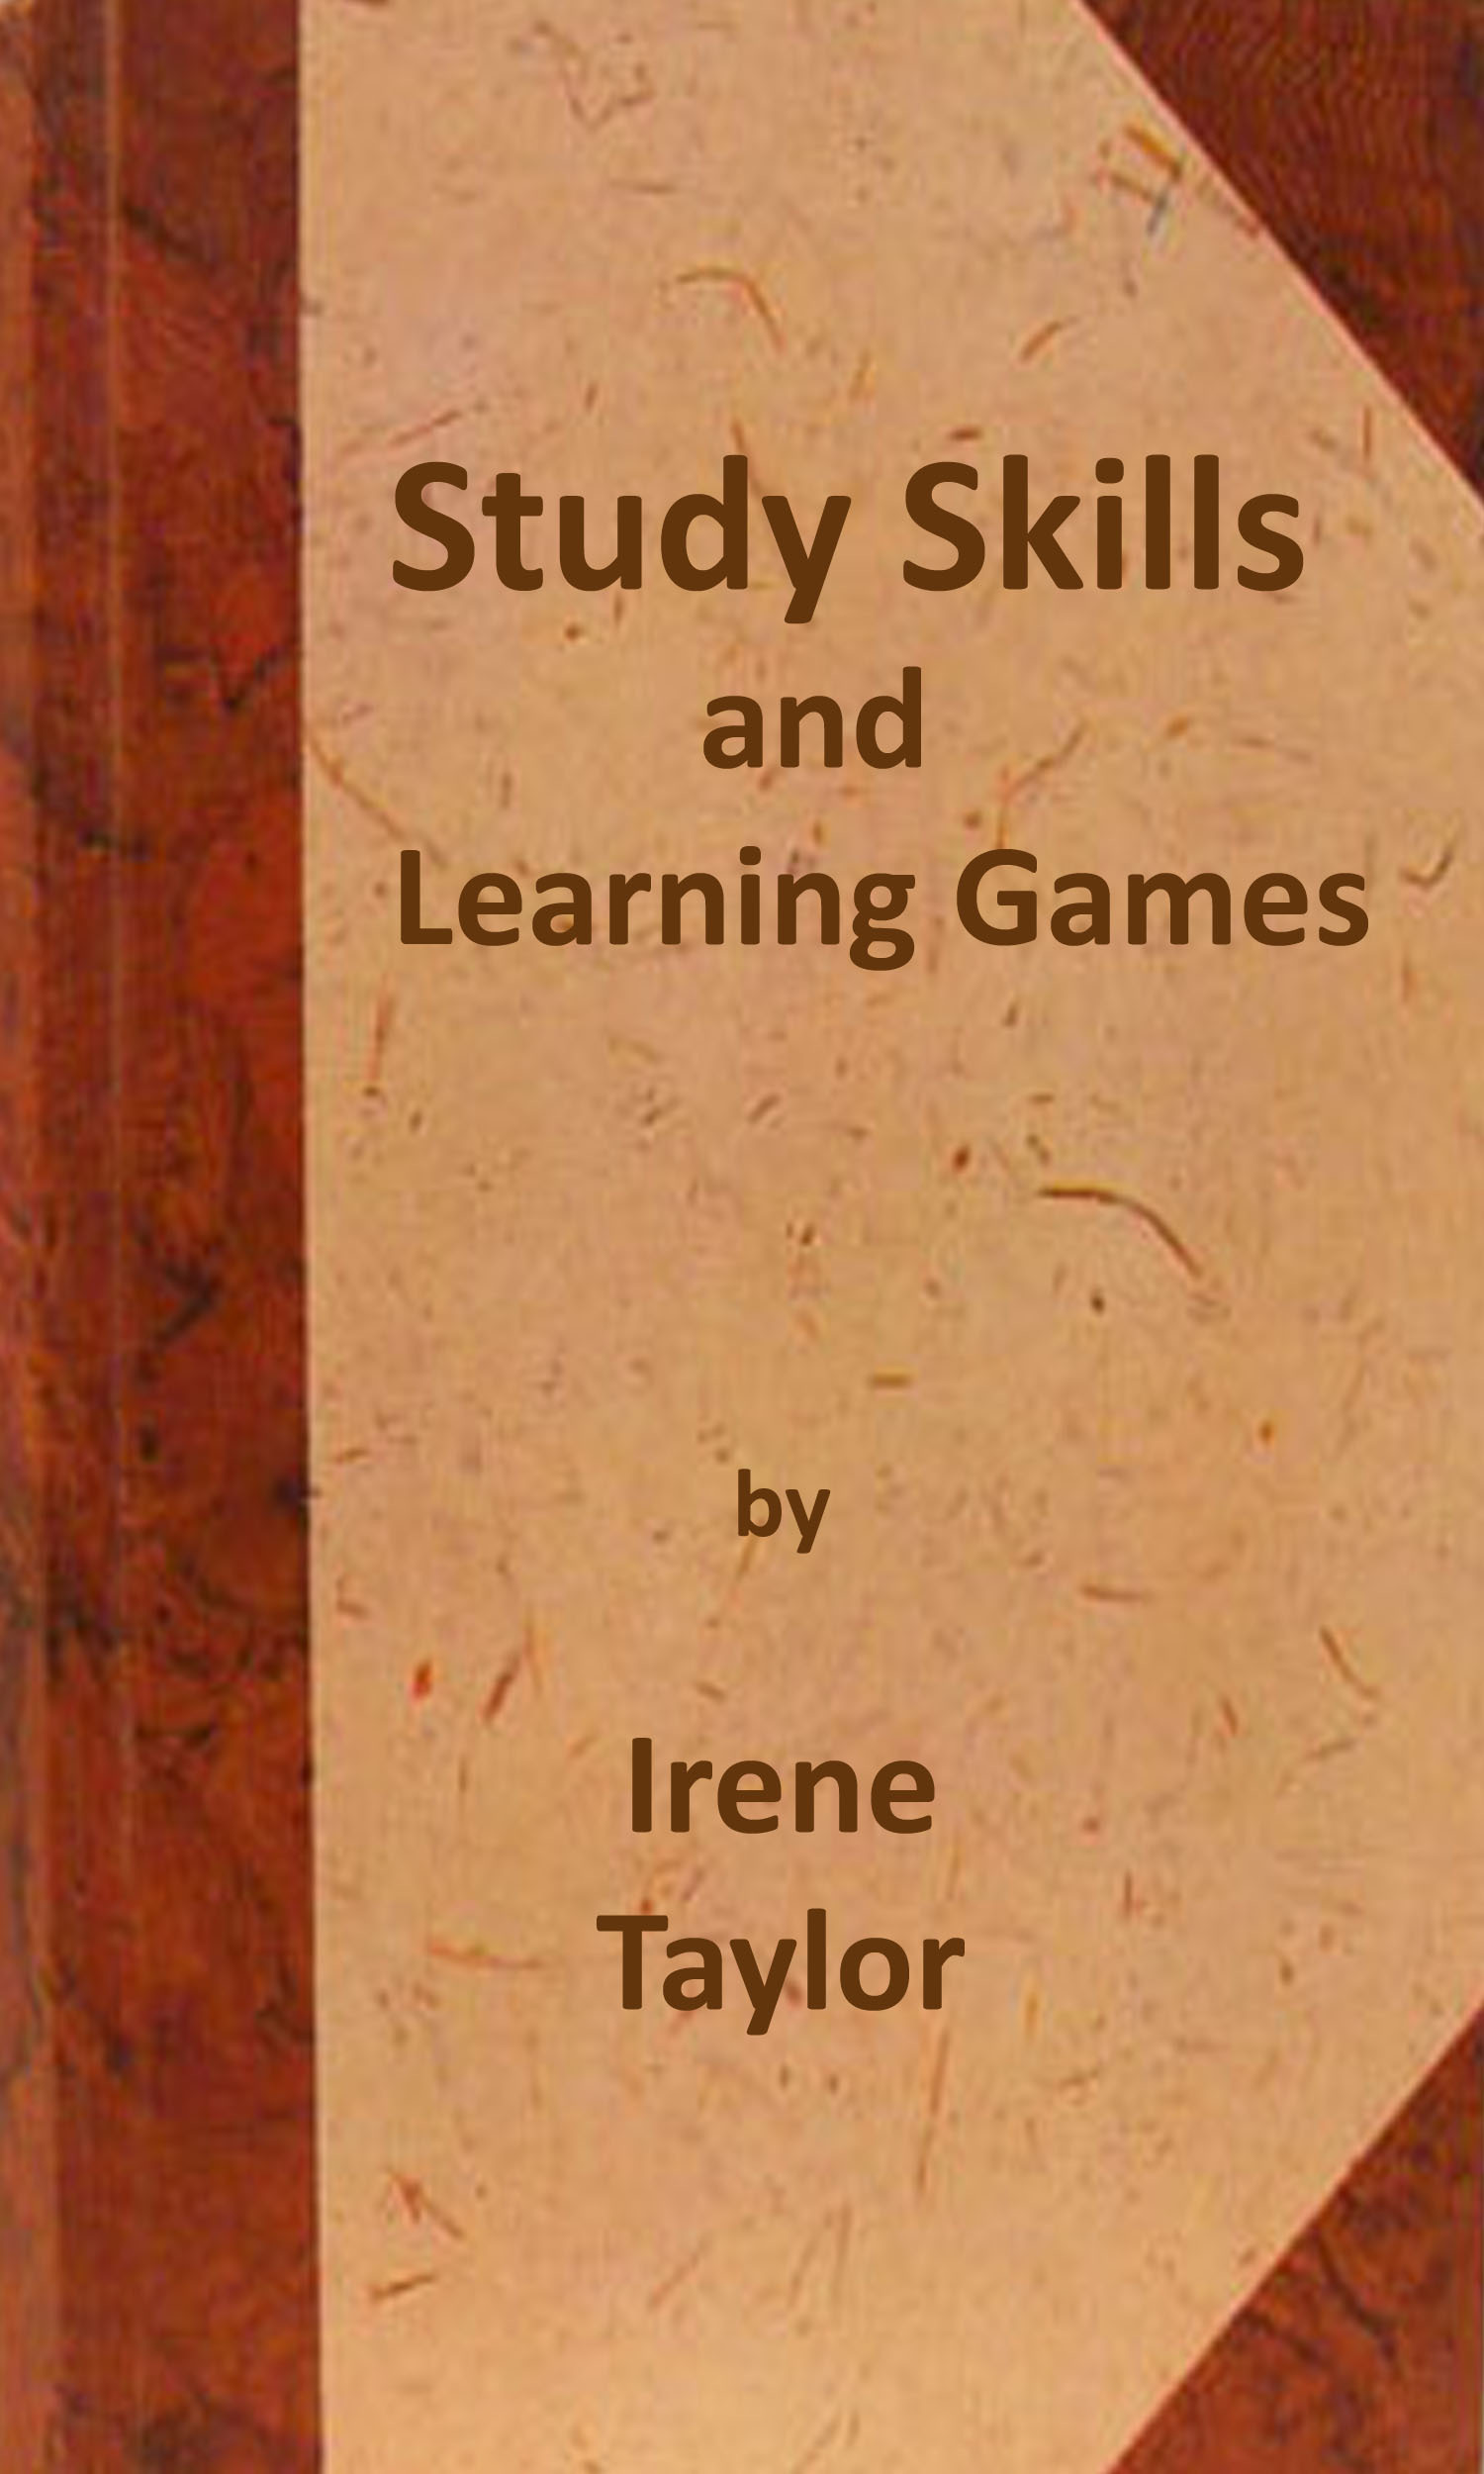 Study Skills and Learning Games By: Irene Taylor